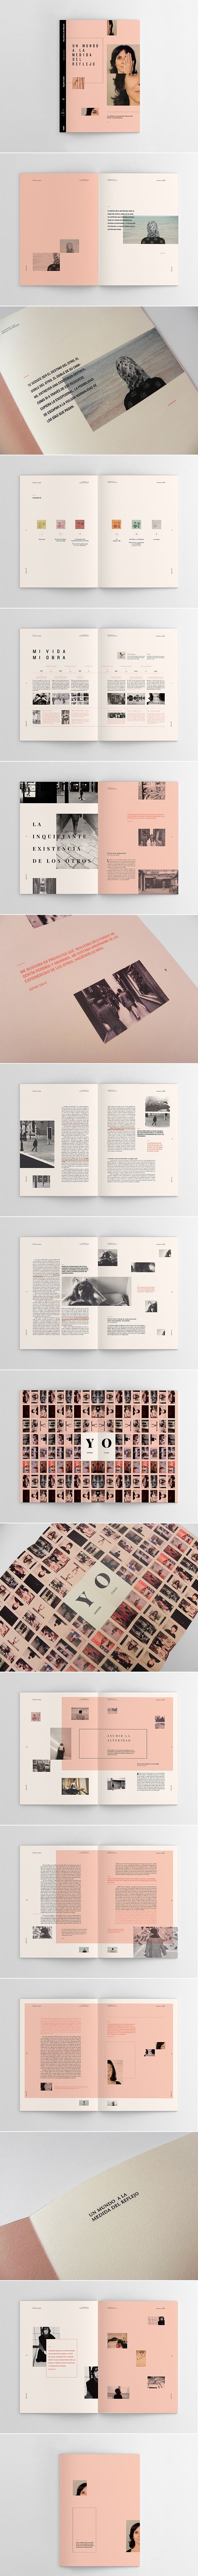 found by hedviggen ⚓️ on pinterest |  editorial design | Sophie Calle | Hacedores de Mundo on Behance